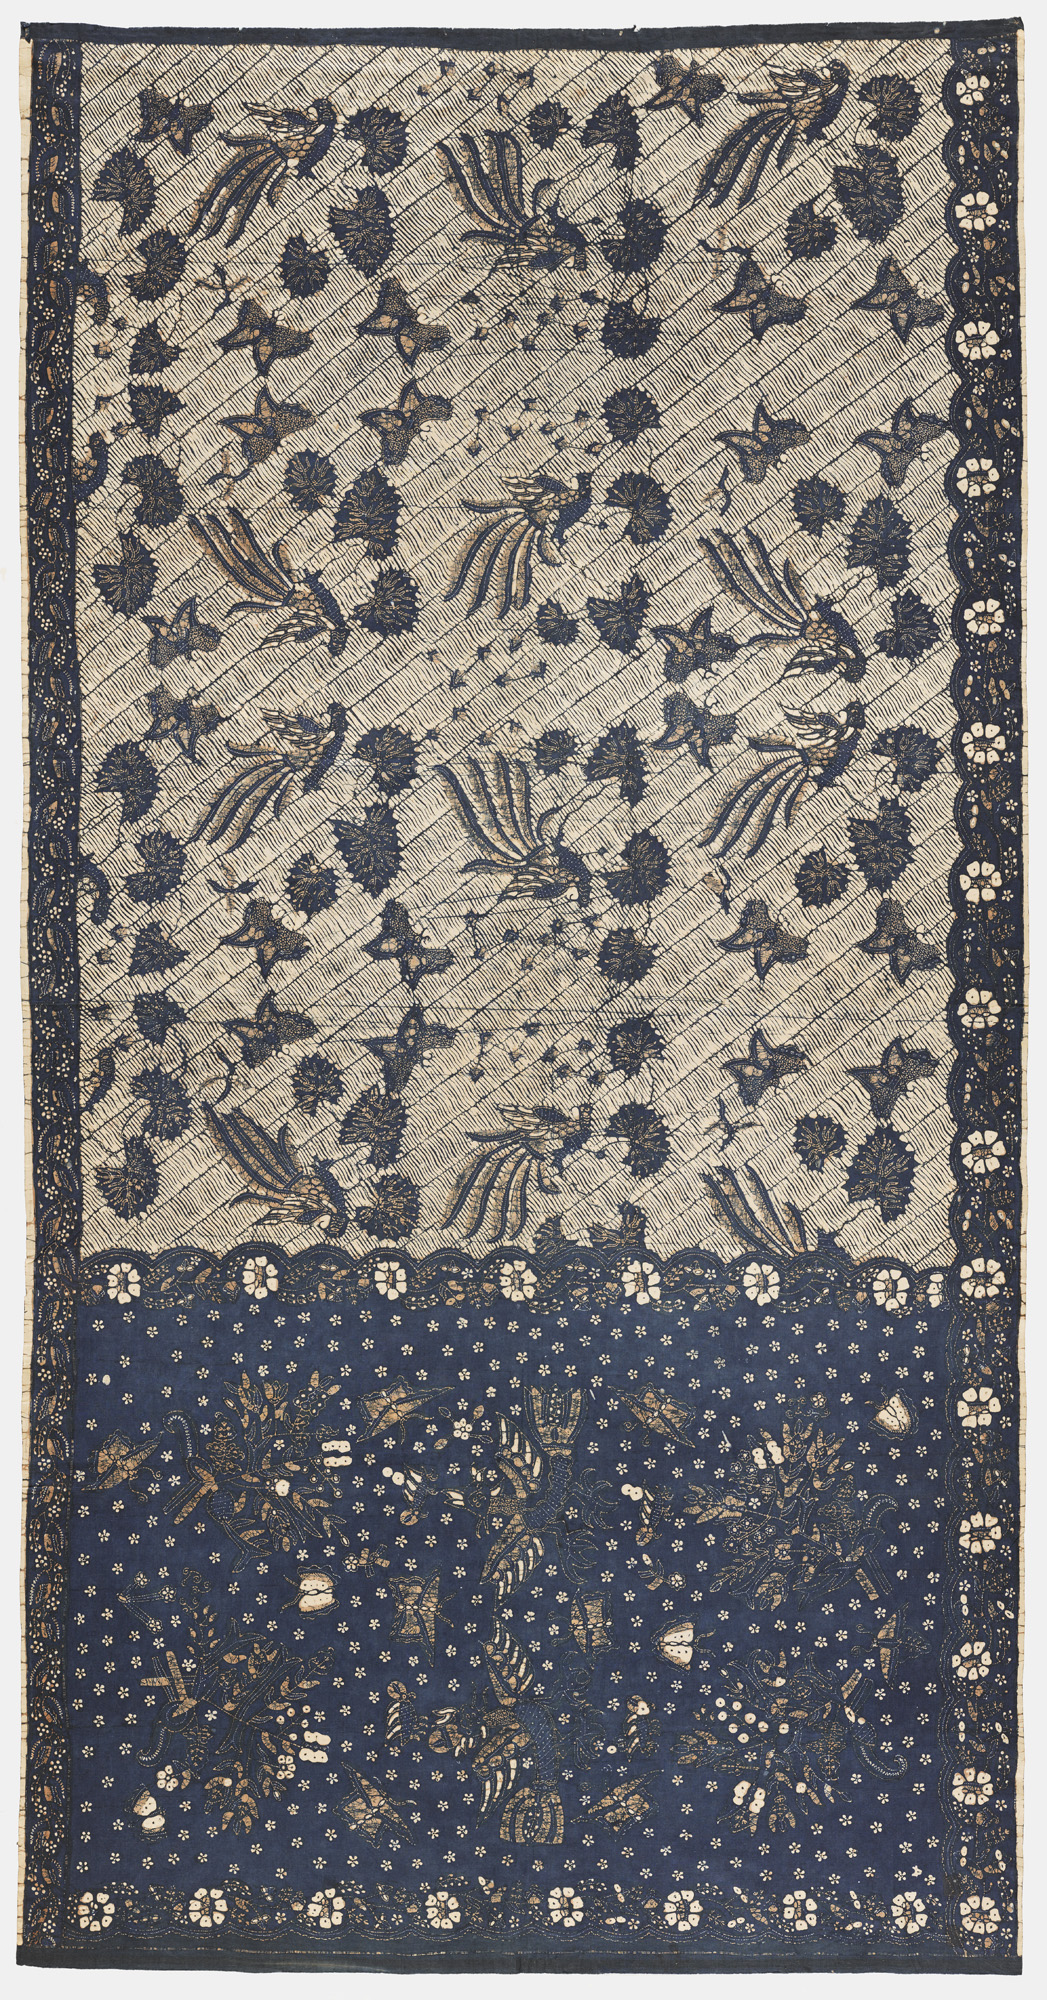 Object of the Week: Sarong (kain kapala)